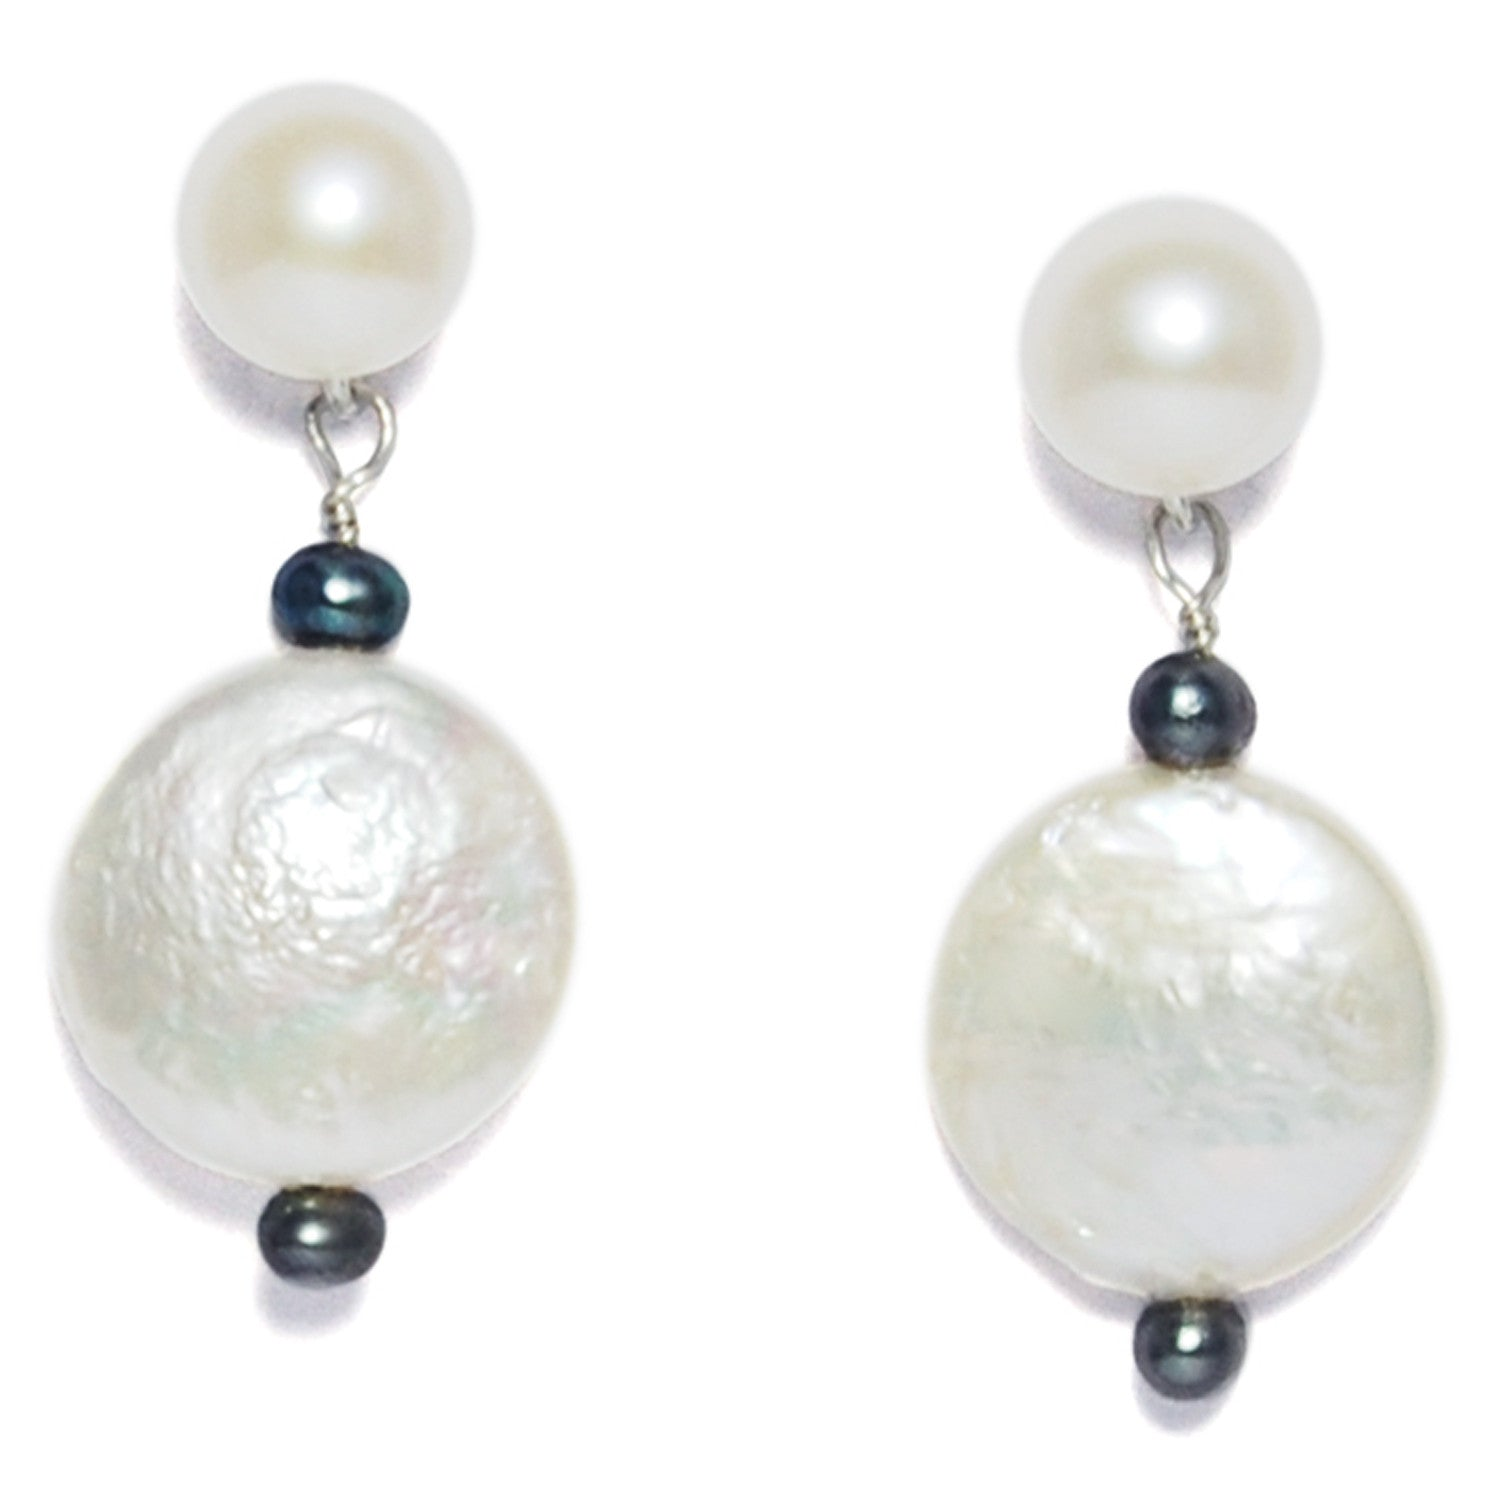 M&M Pearl Drop Earrings in White